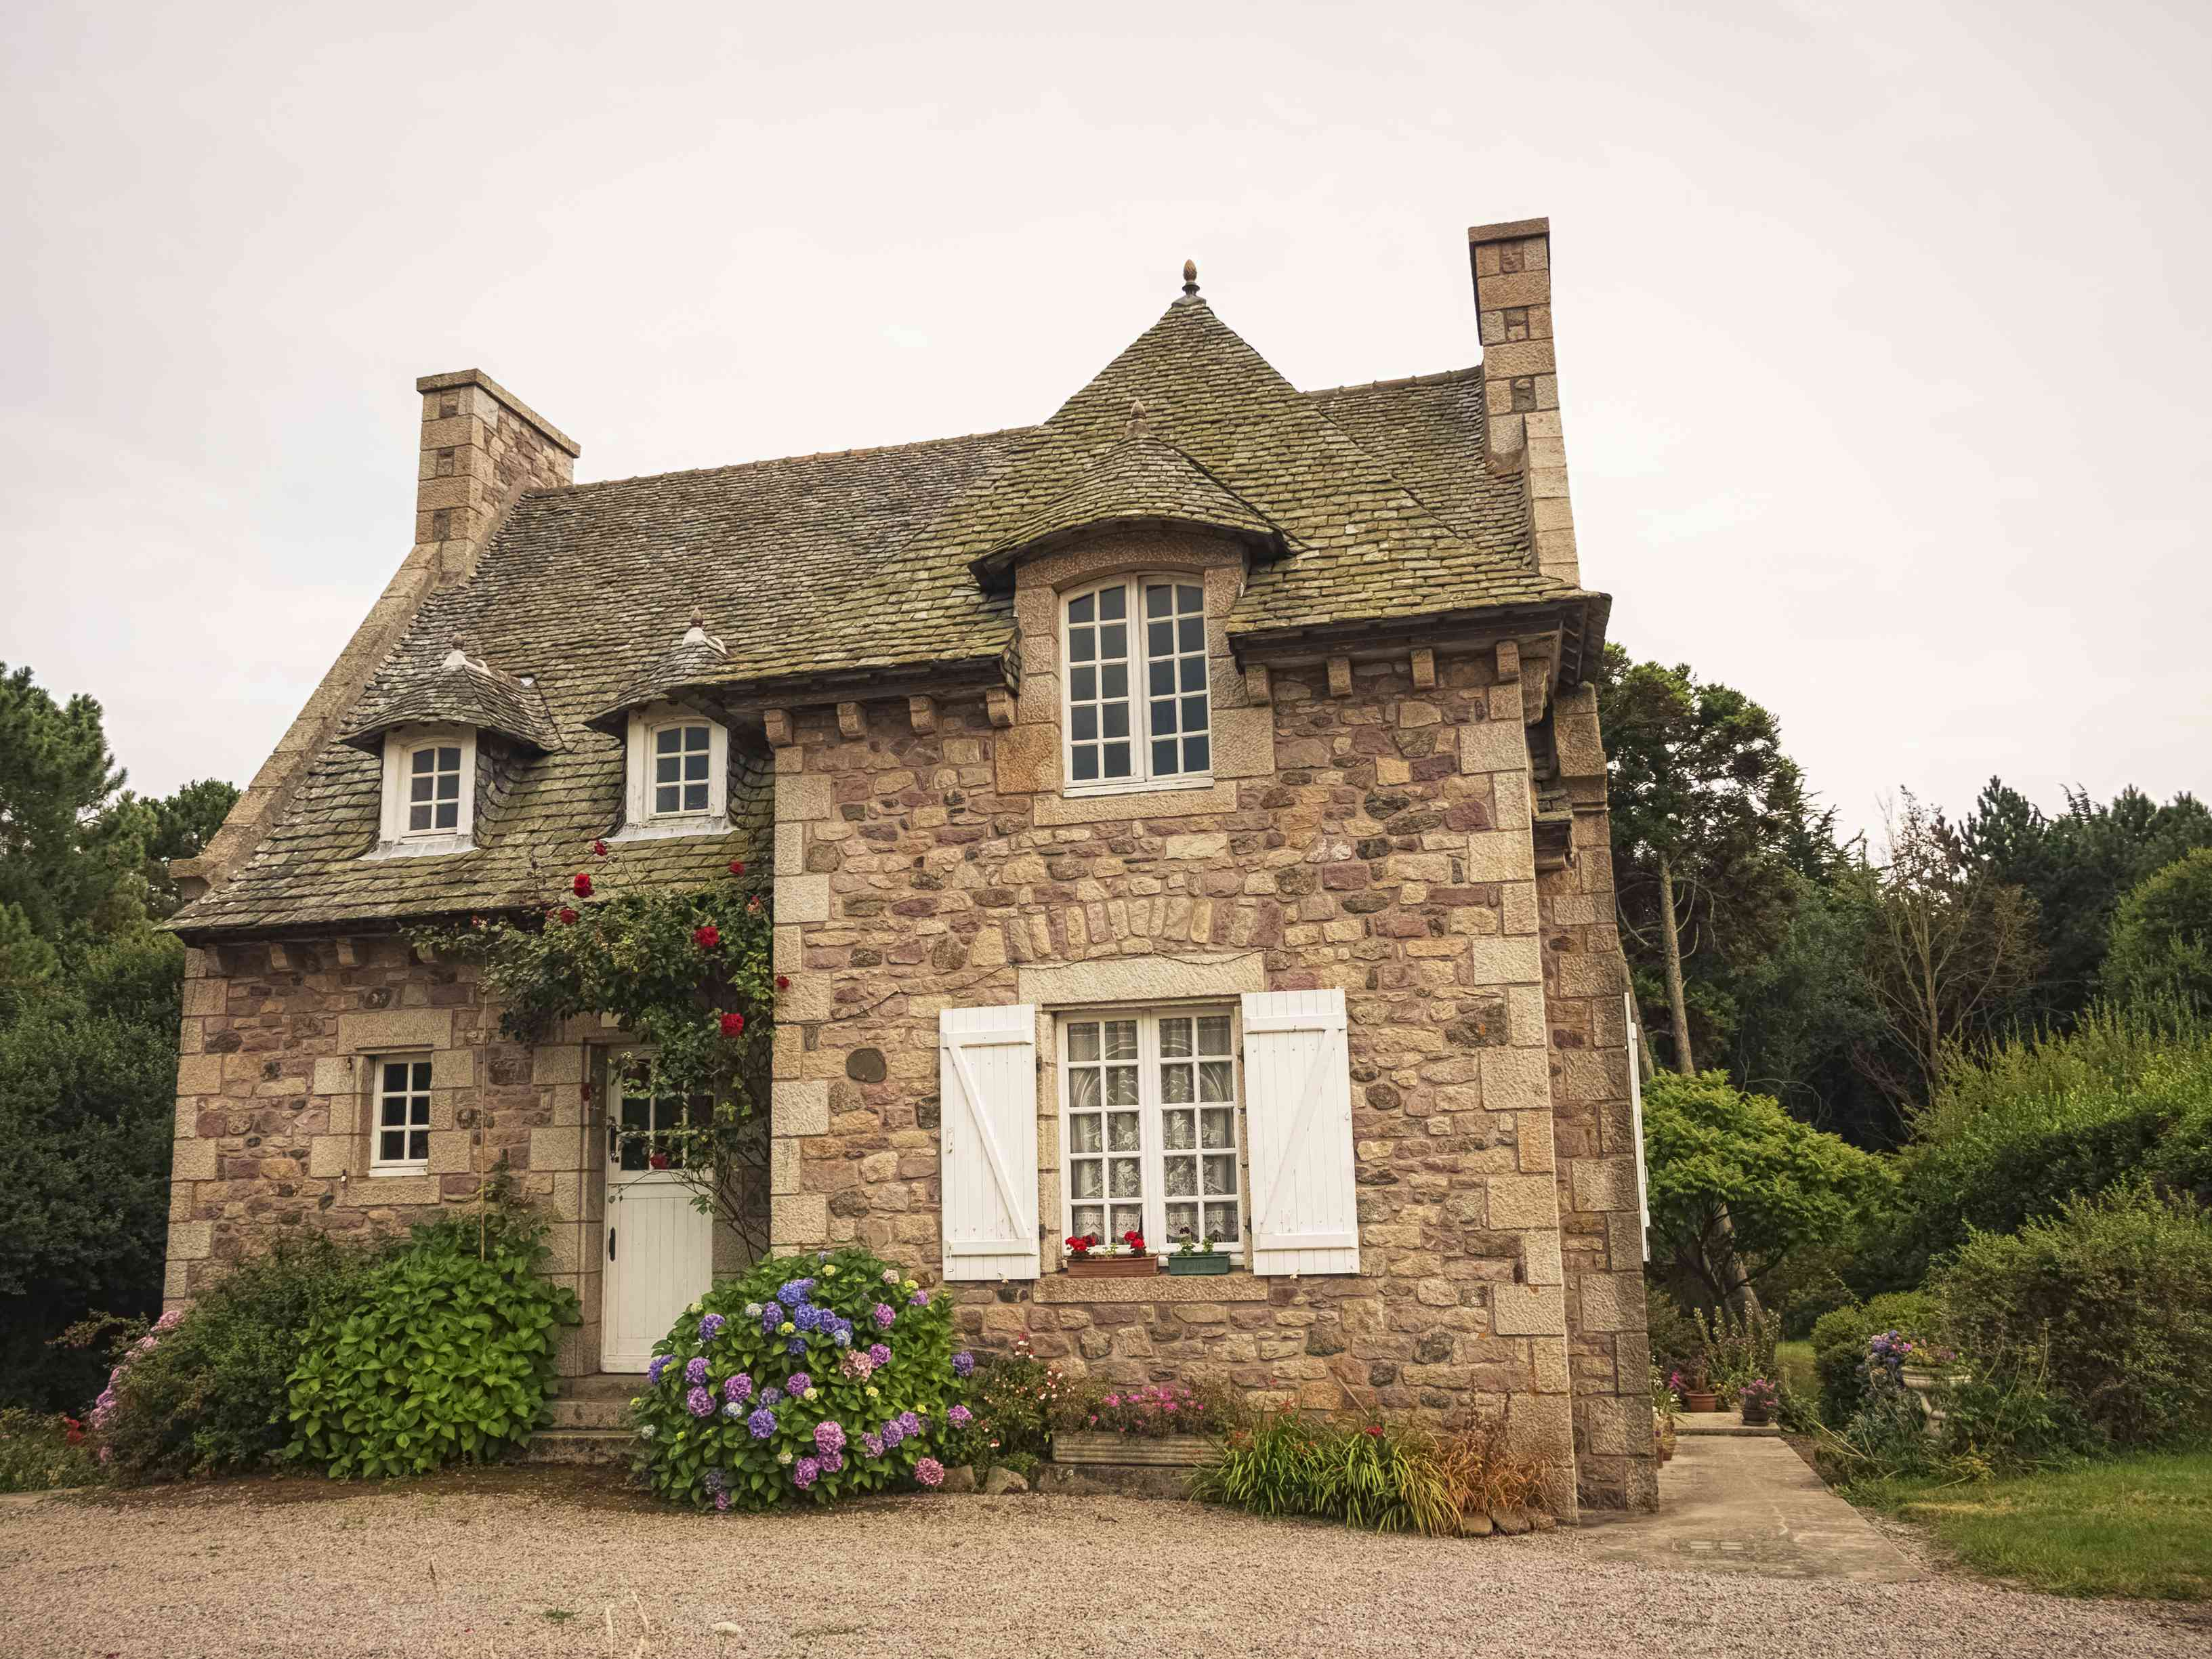 A French country home with a stone facade.